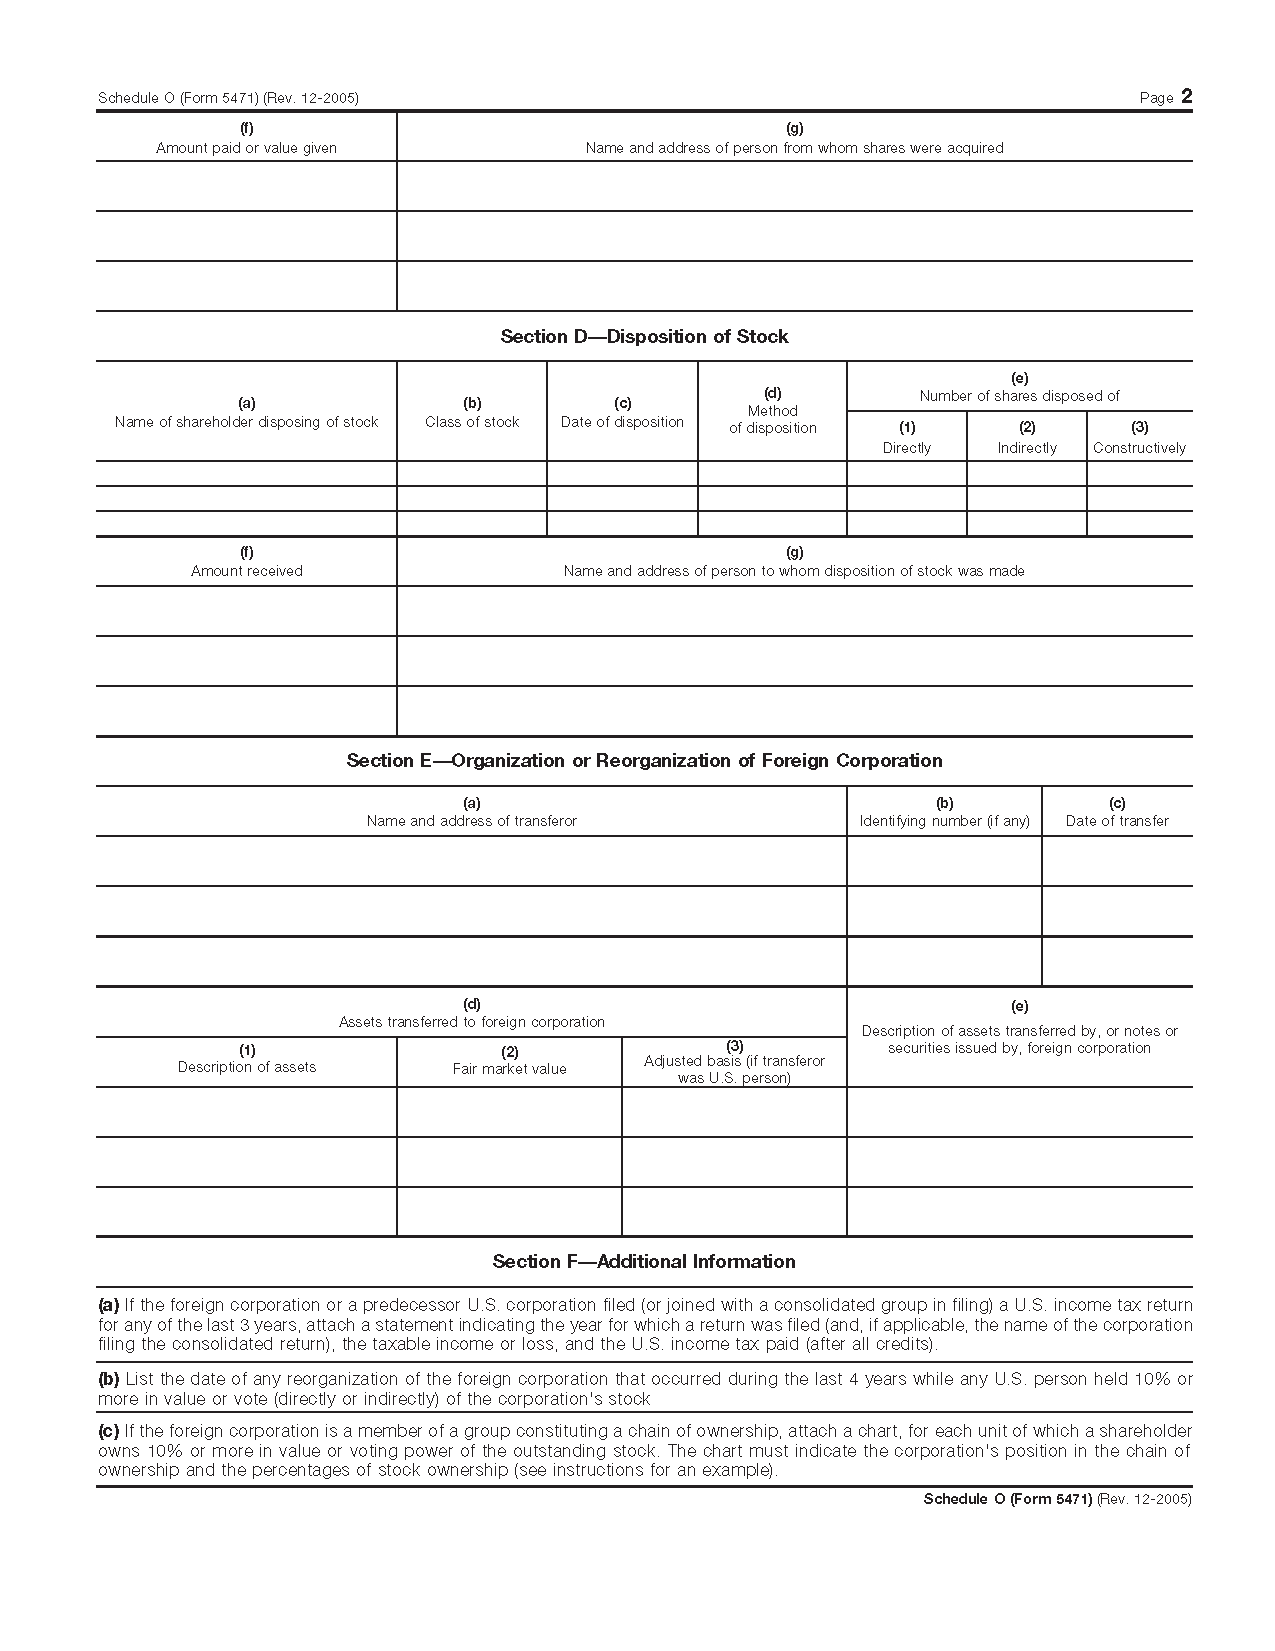 Form 5471 Schedule O Organization Or Reorganization Of Foreign